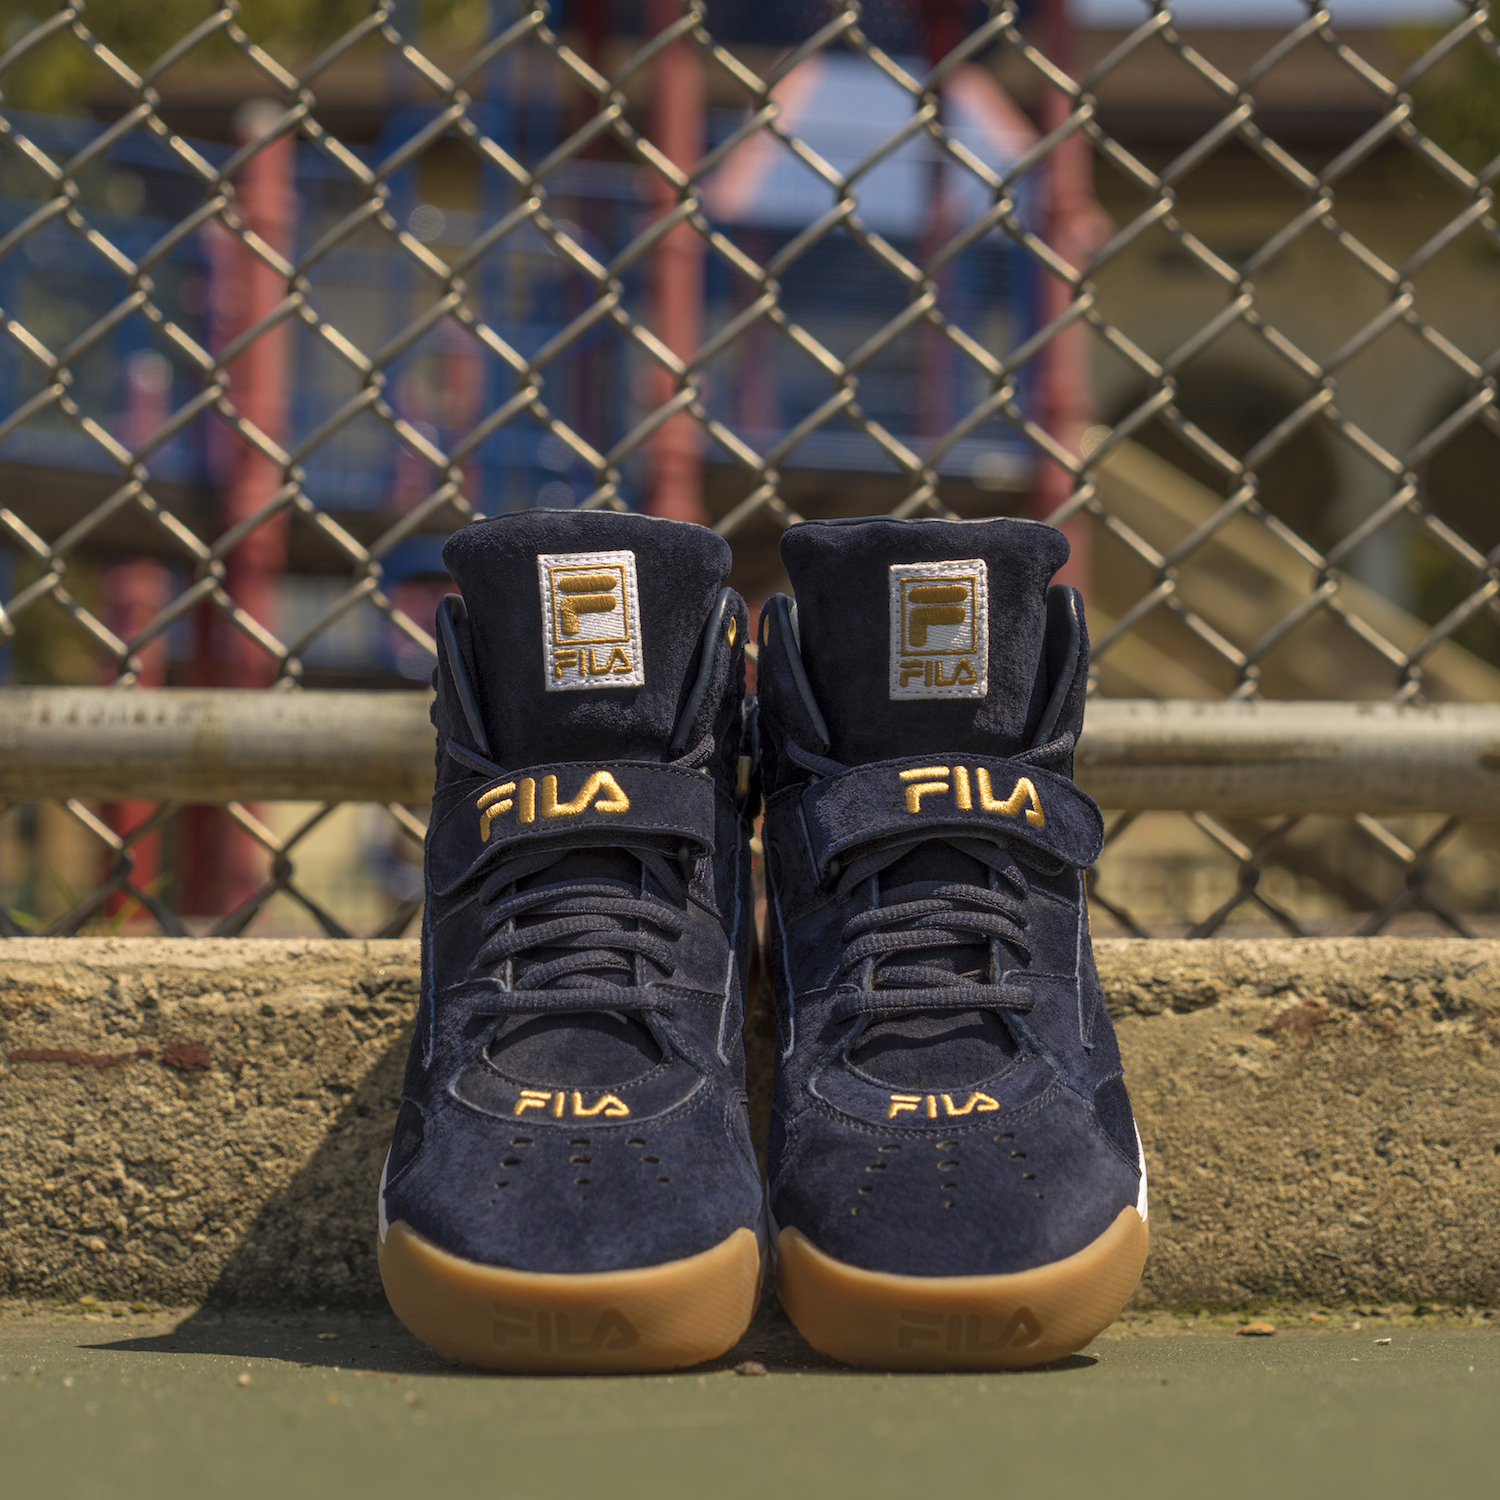 FILA Spoiler royal beginnings 4